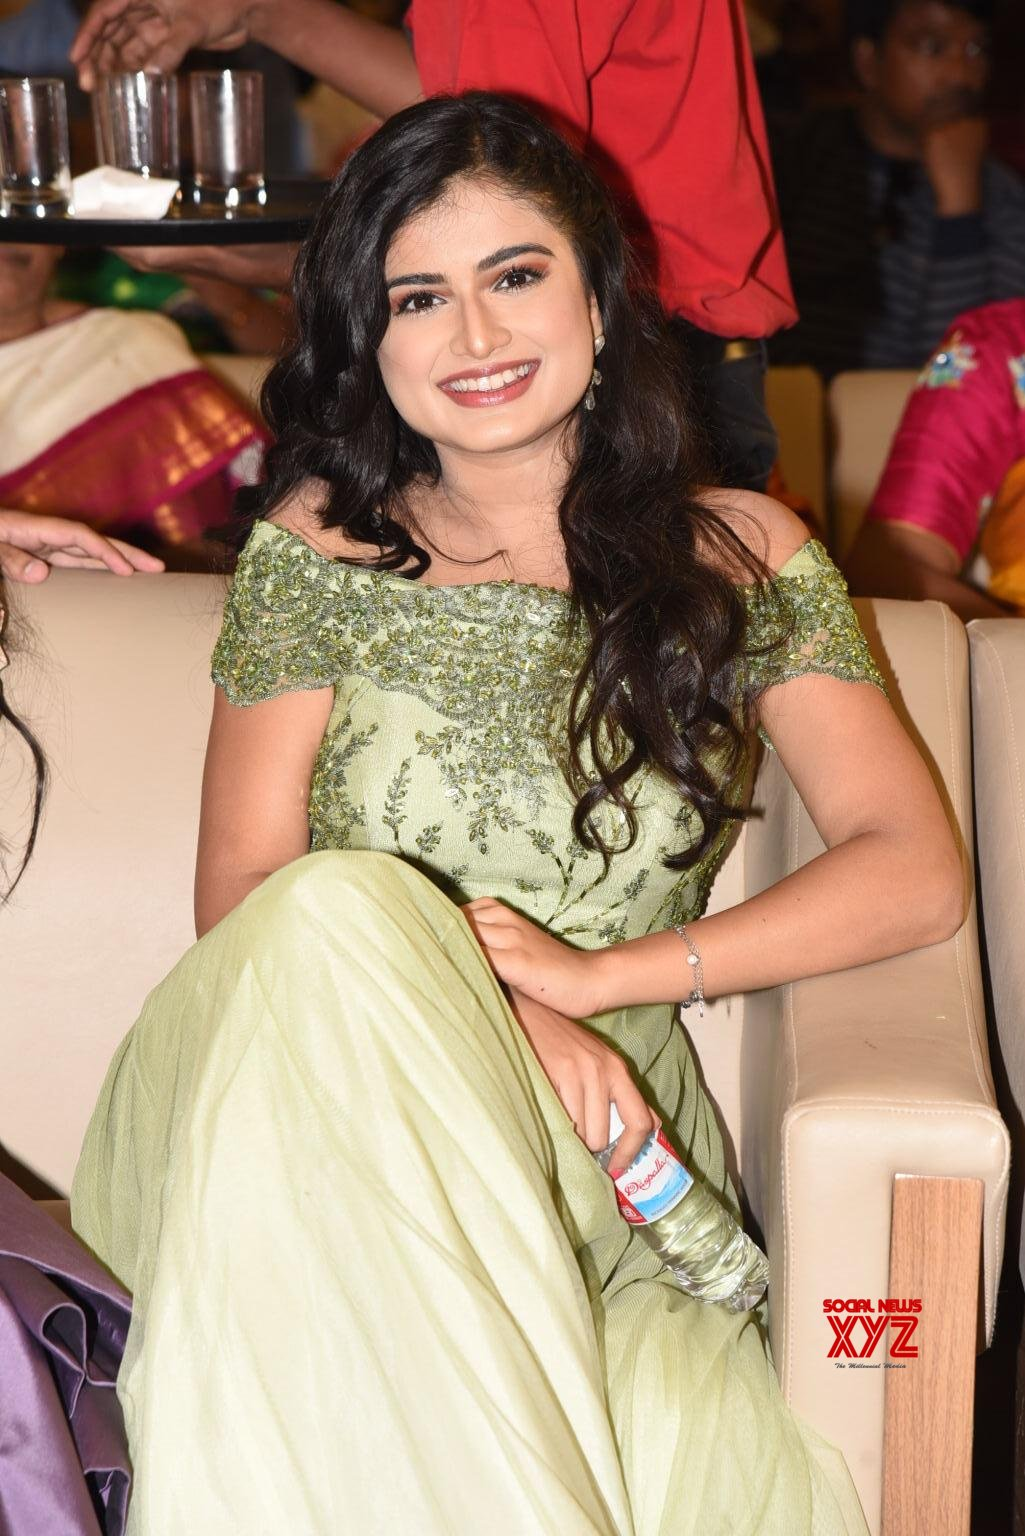 Actress Hemal Ingle Stills From Hushaaru Pre Release Event